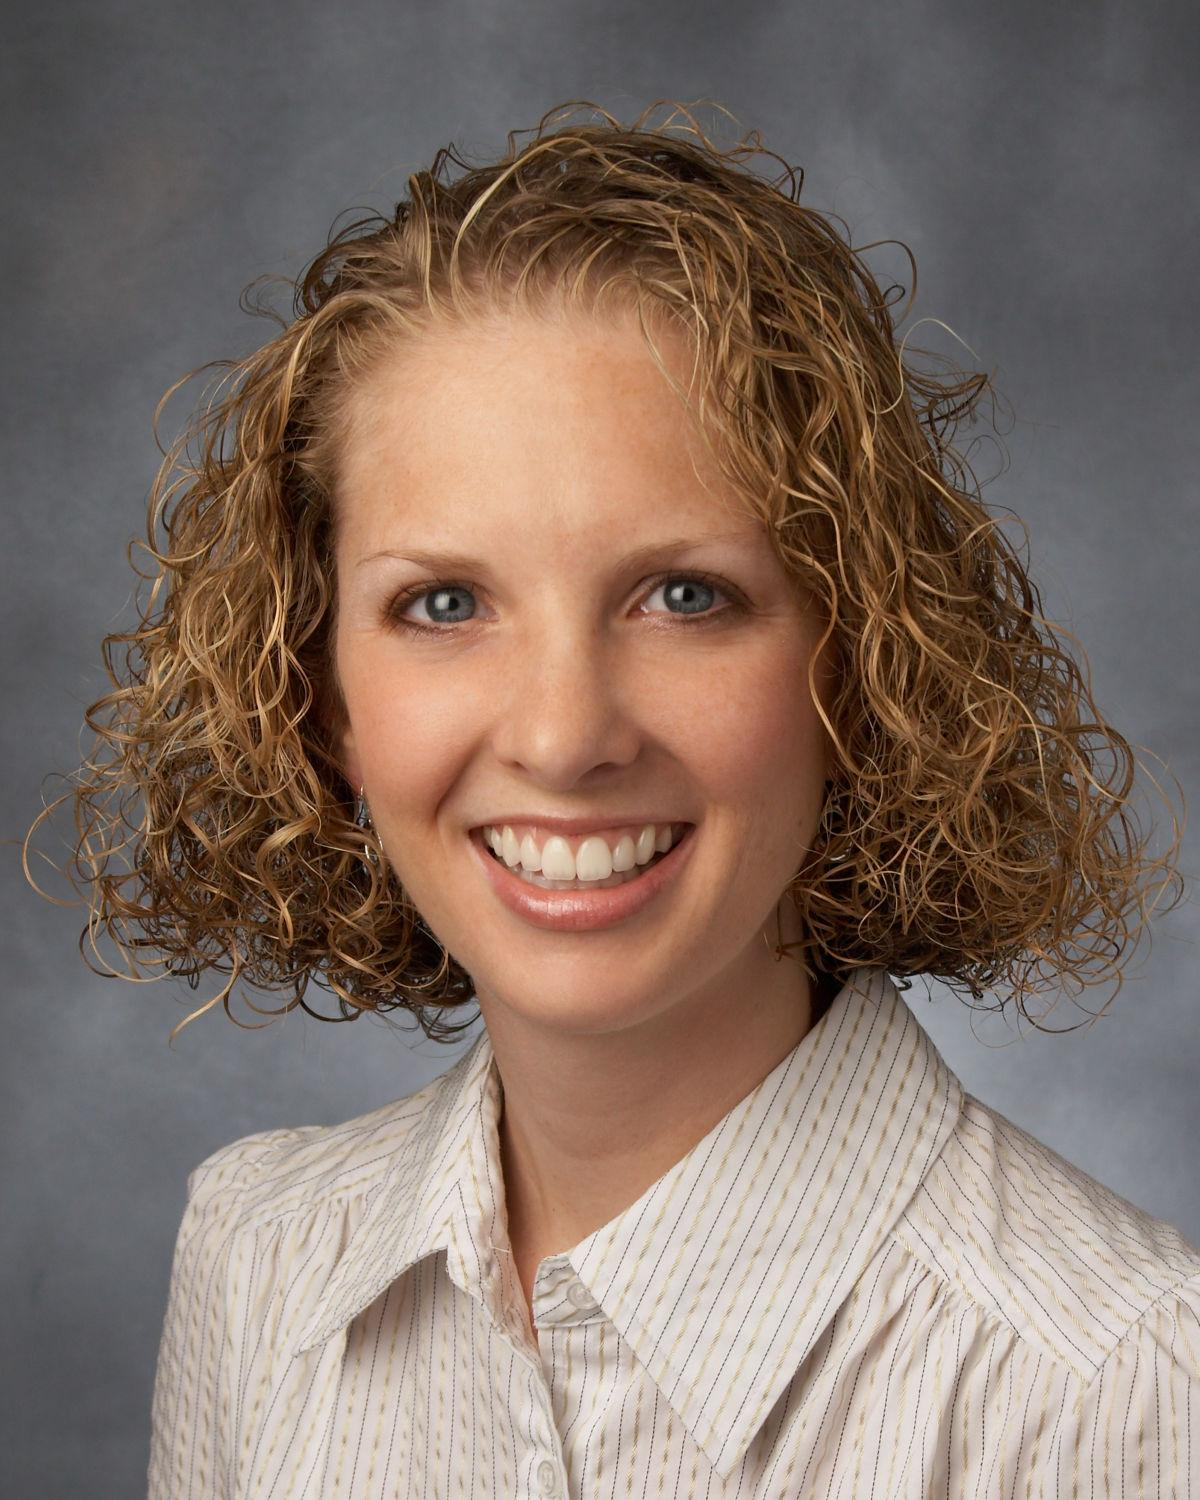 Heather L. Zimmerman - Boys Town Pediatrics